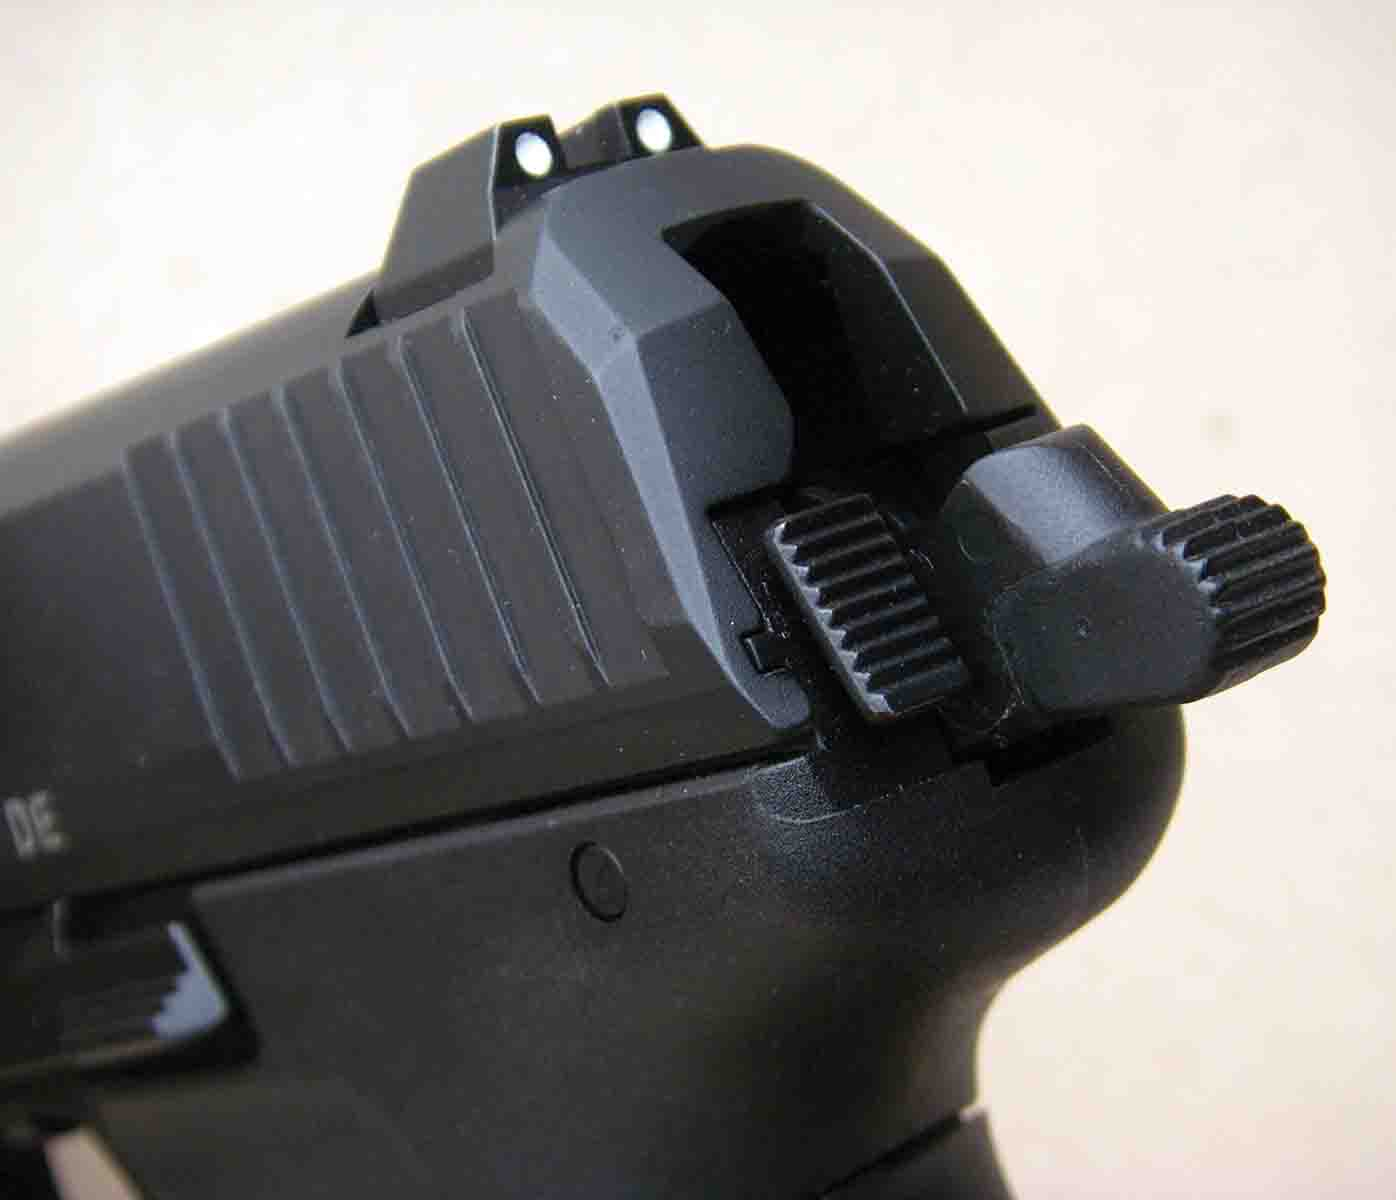 Robust sights are dovetailed into the slide and provide a three-dot system. The decocking button is located to the left of the hammer. Its location also serves to make the sides of the pistol snag free.